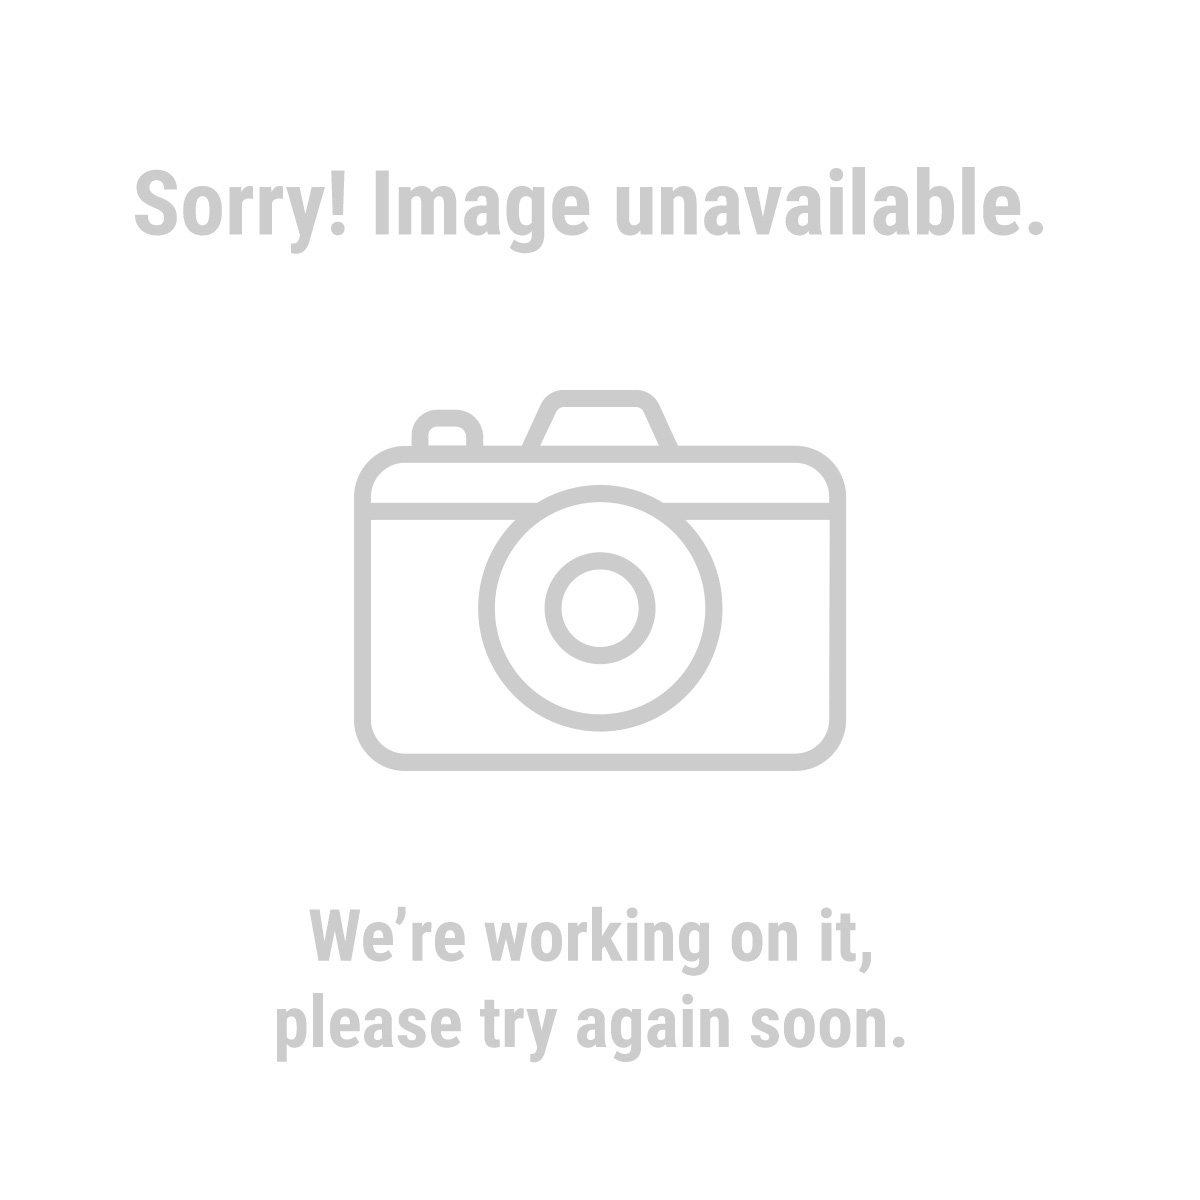 Ship to Shore 3305 Ultrasonic Cleaner